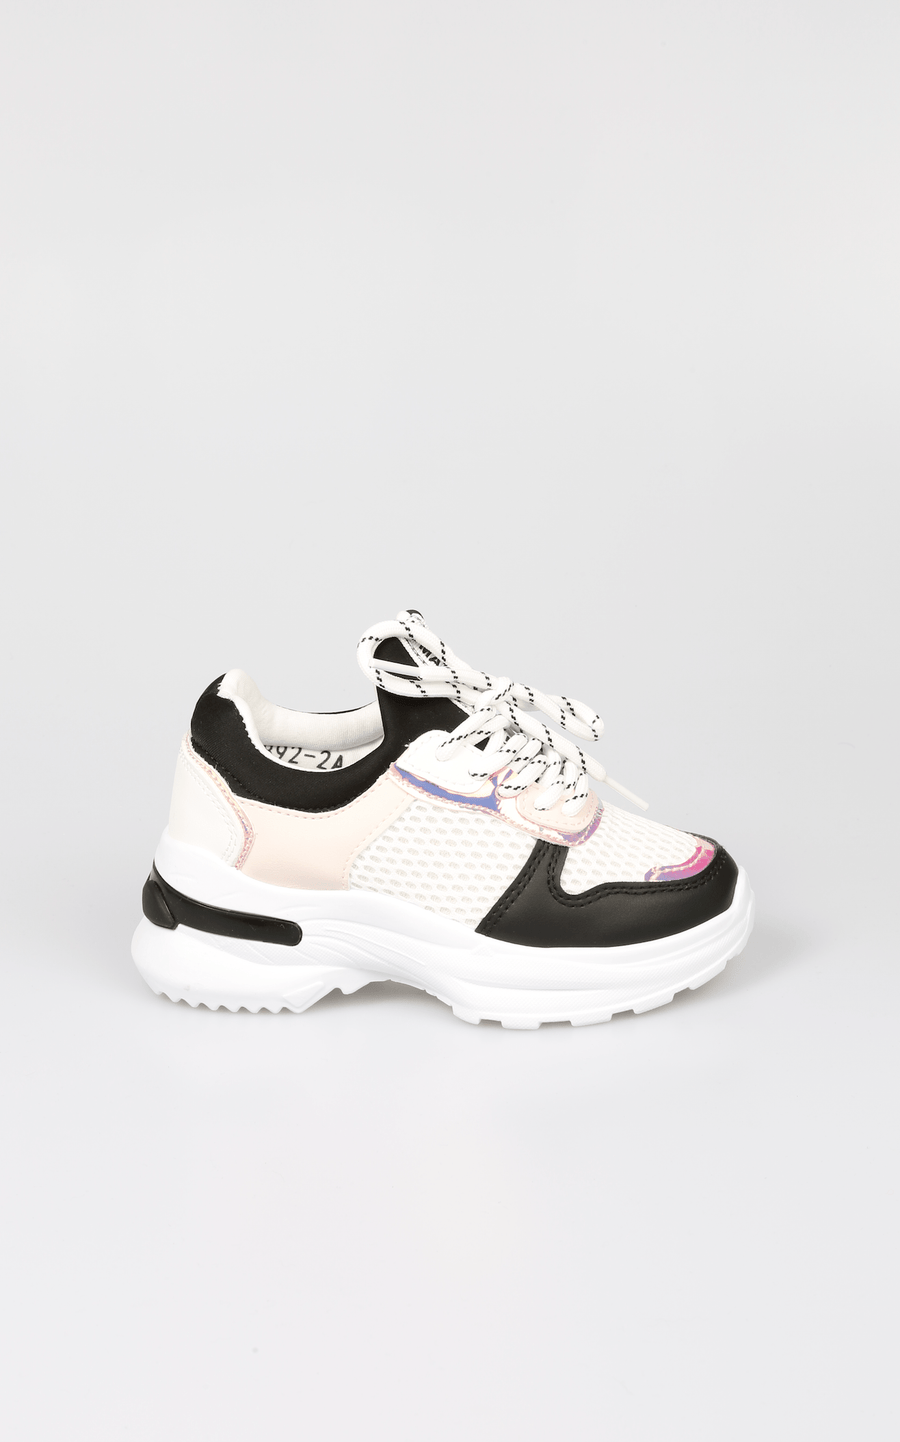 Sana Chunky Sole Trainer with Holographic Detail Black SS20 From Little Attitude